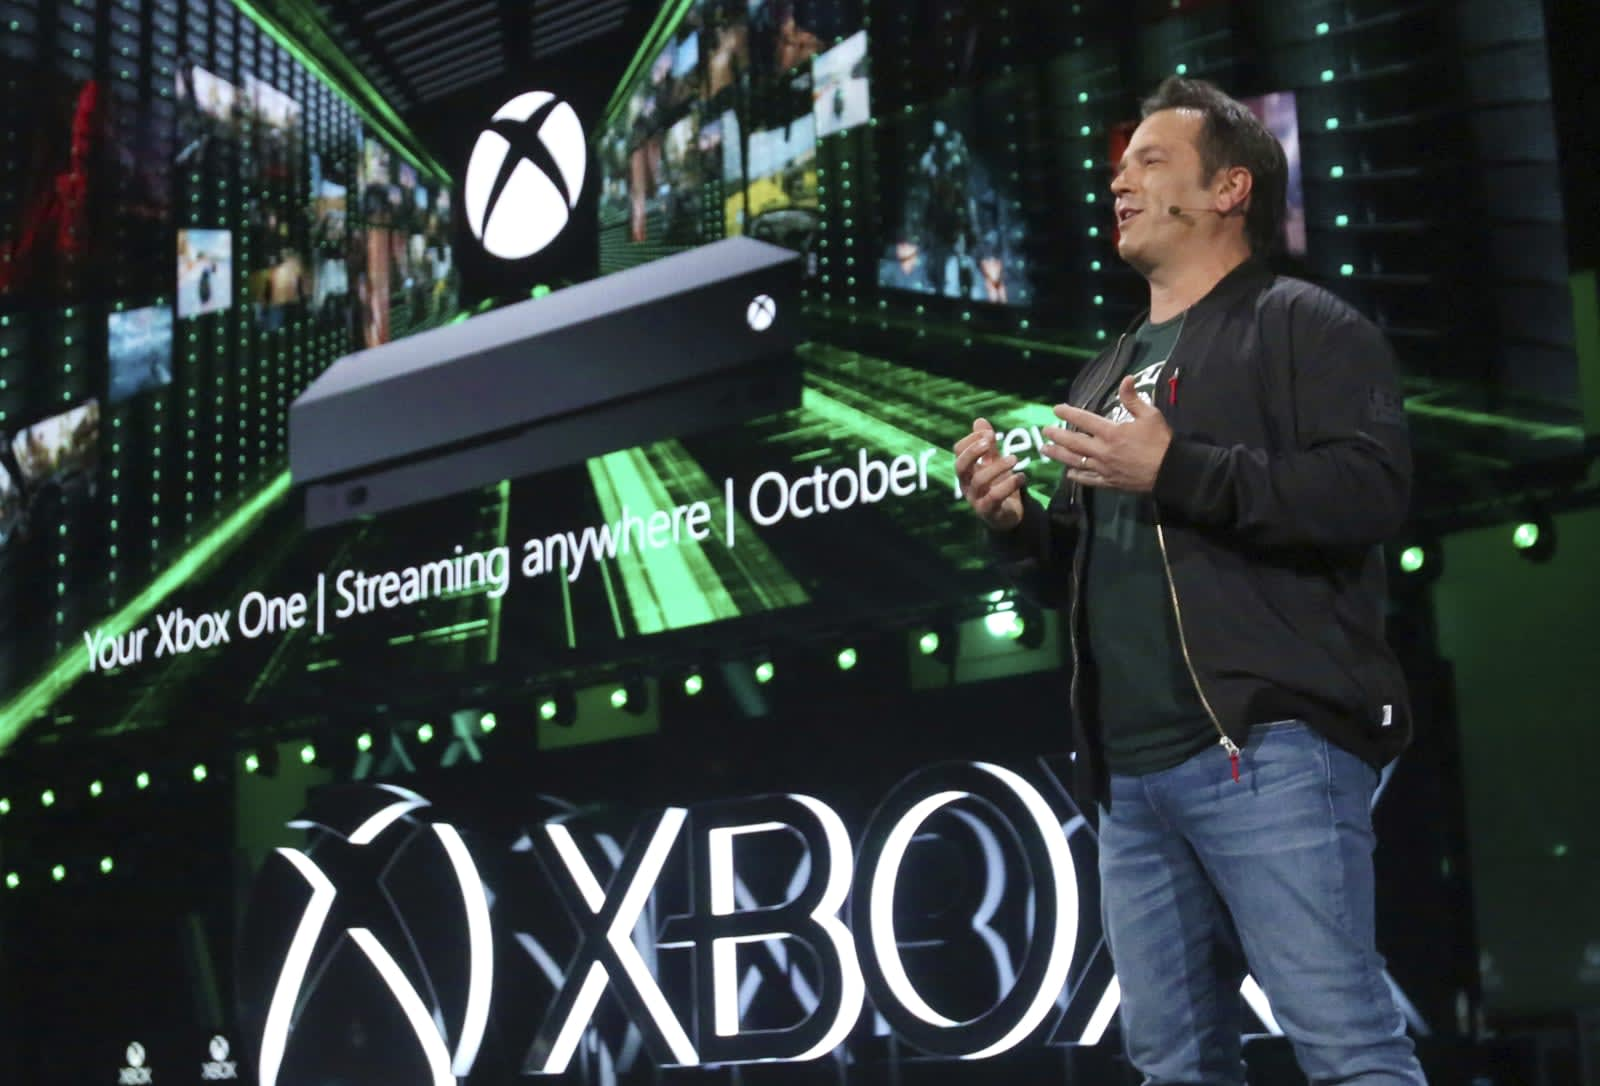 Microsoft isn't working on a streaming-only Xbox right now